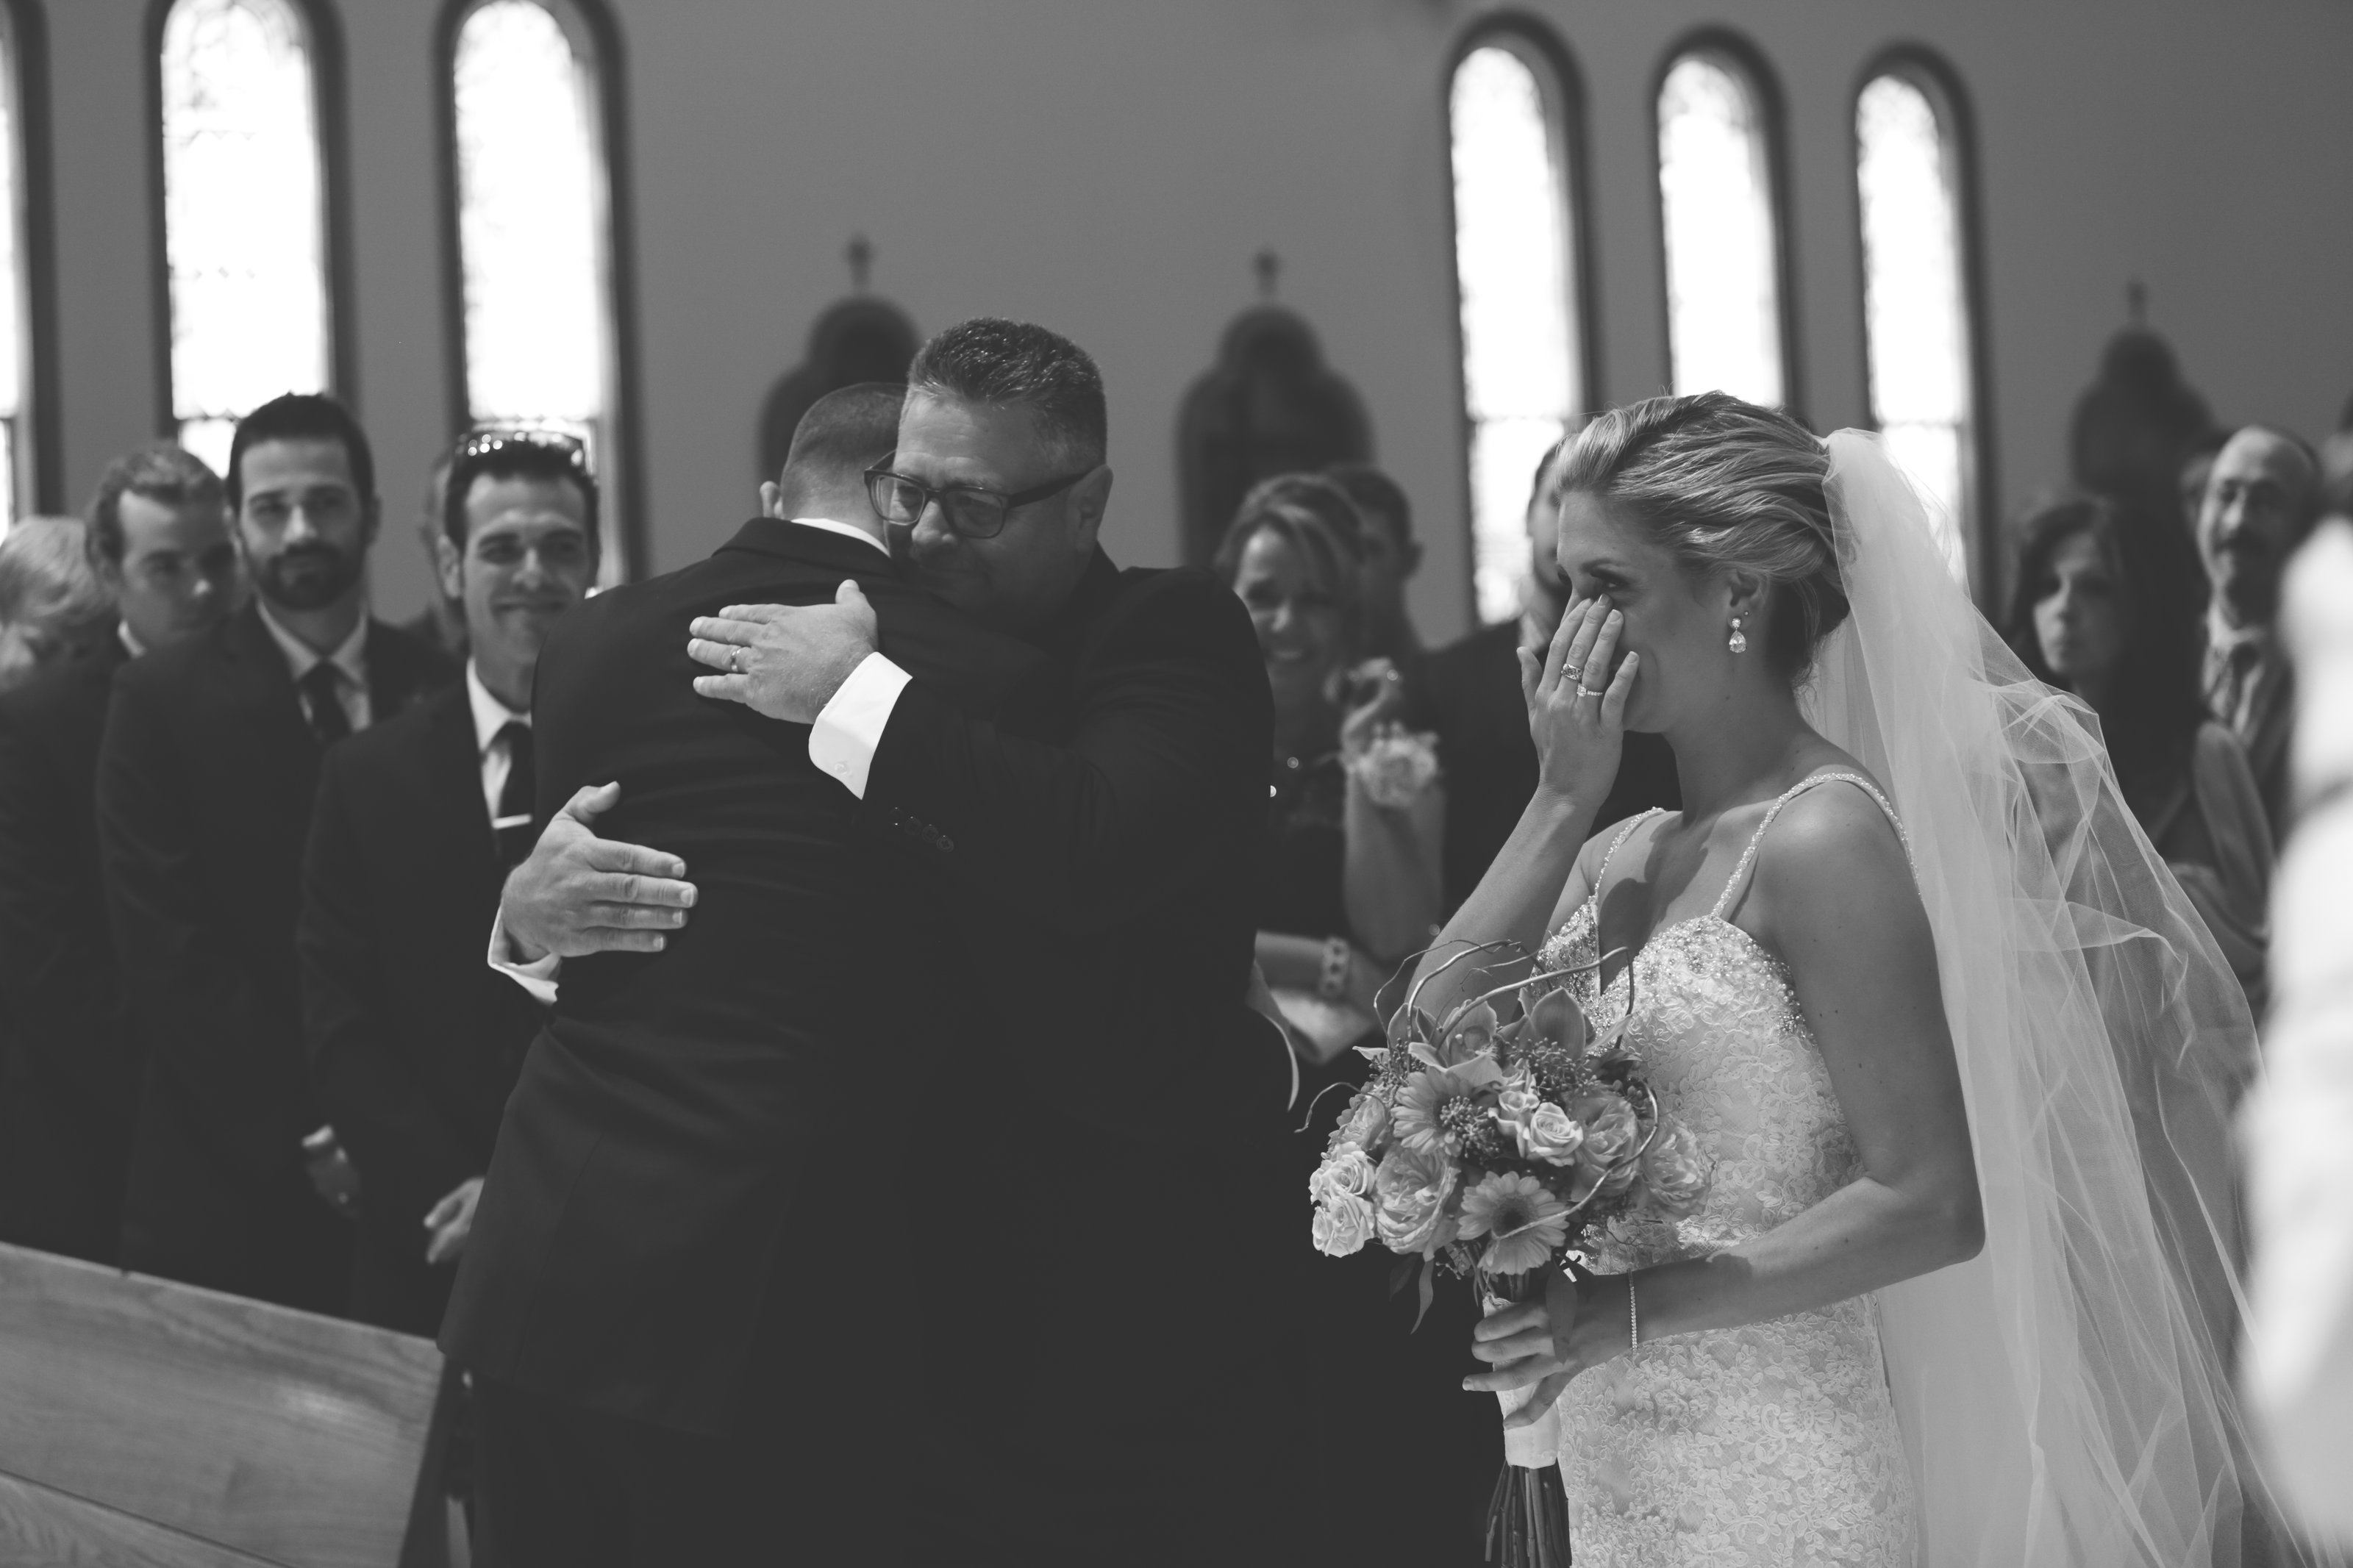 Videographers capture the emotional moments of a wedding day for you to relive later.